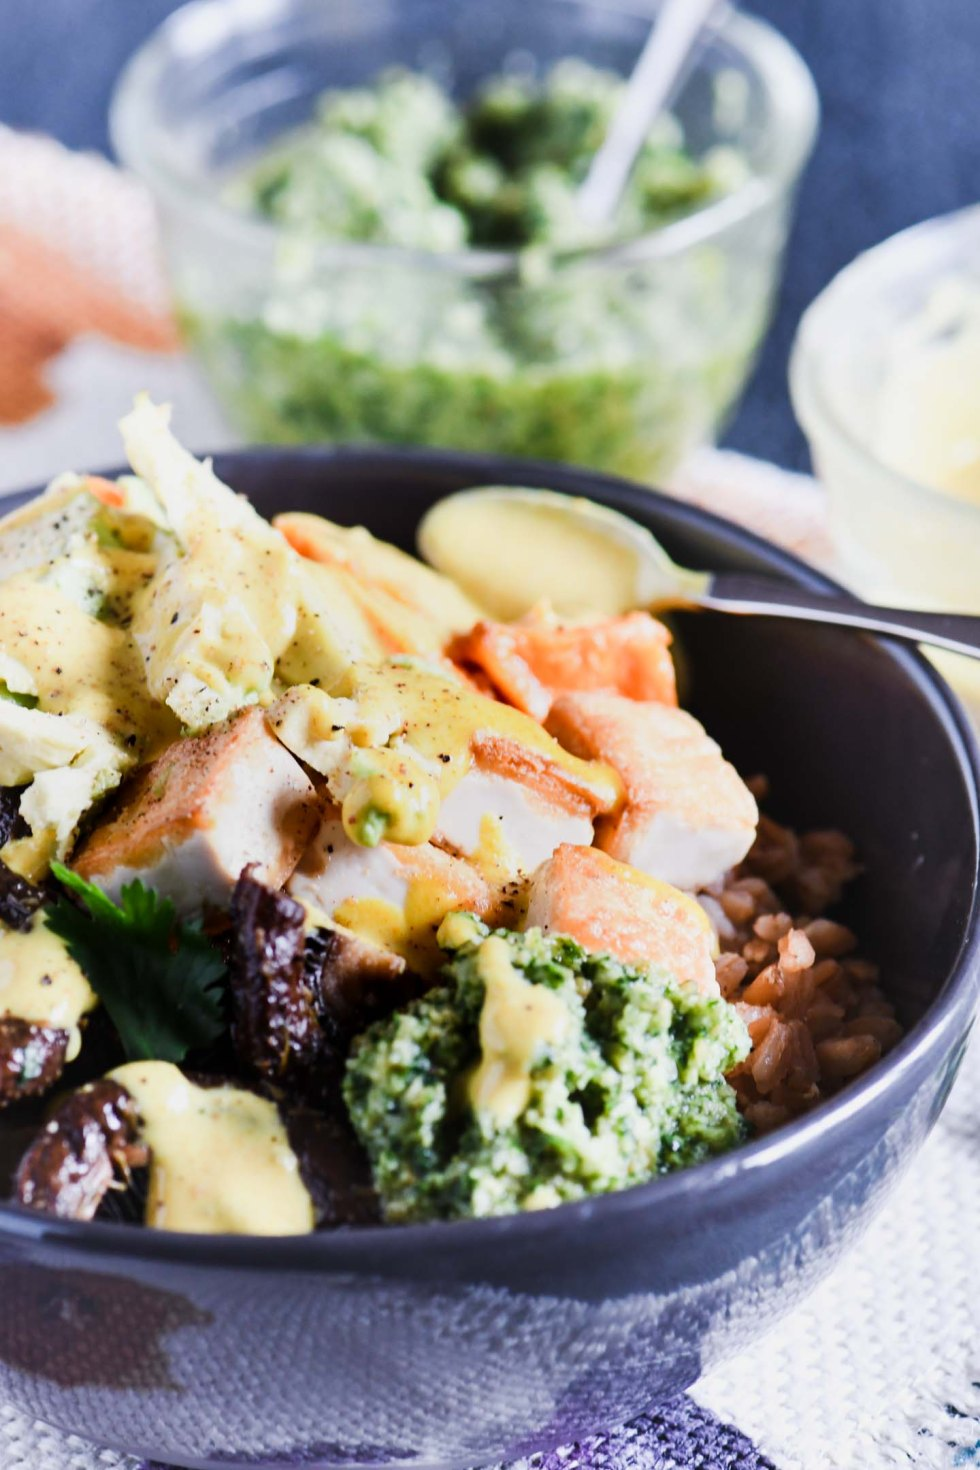 This buddha bowl starts with a base of ancient grains and gets topped with tofu, sweet potatoes, miso sauce and cilantro pesto for a healthy vegetarian meal!